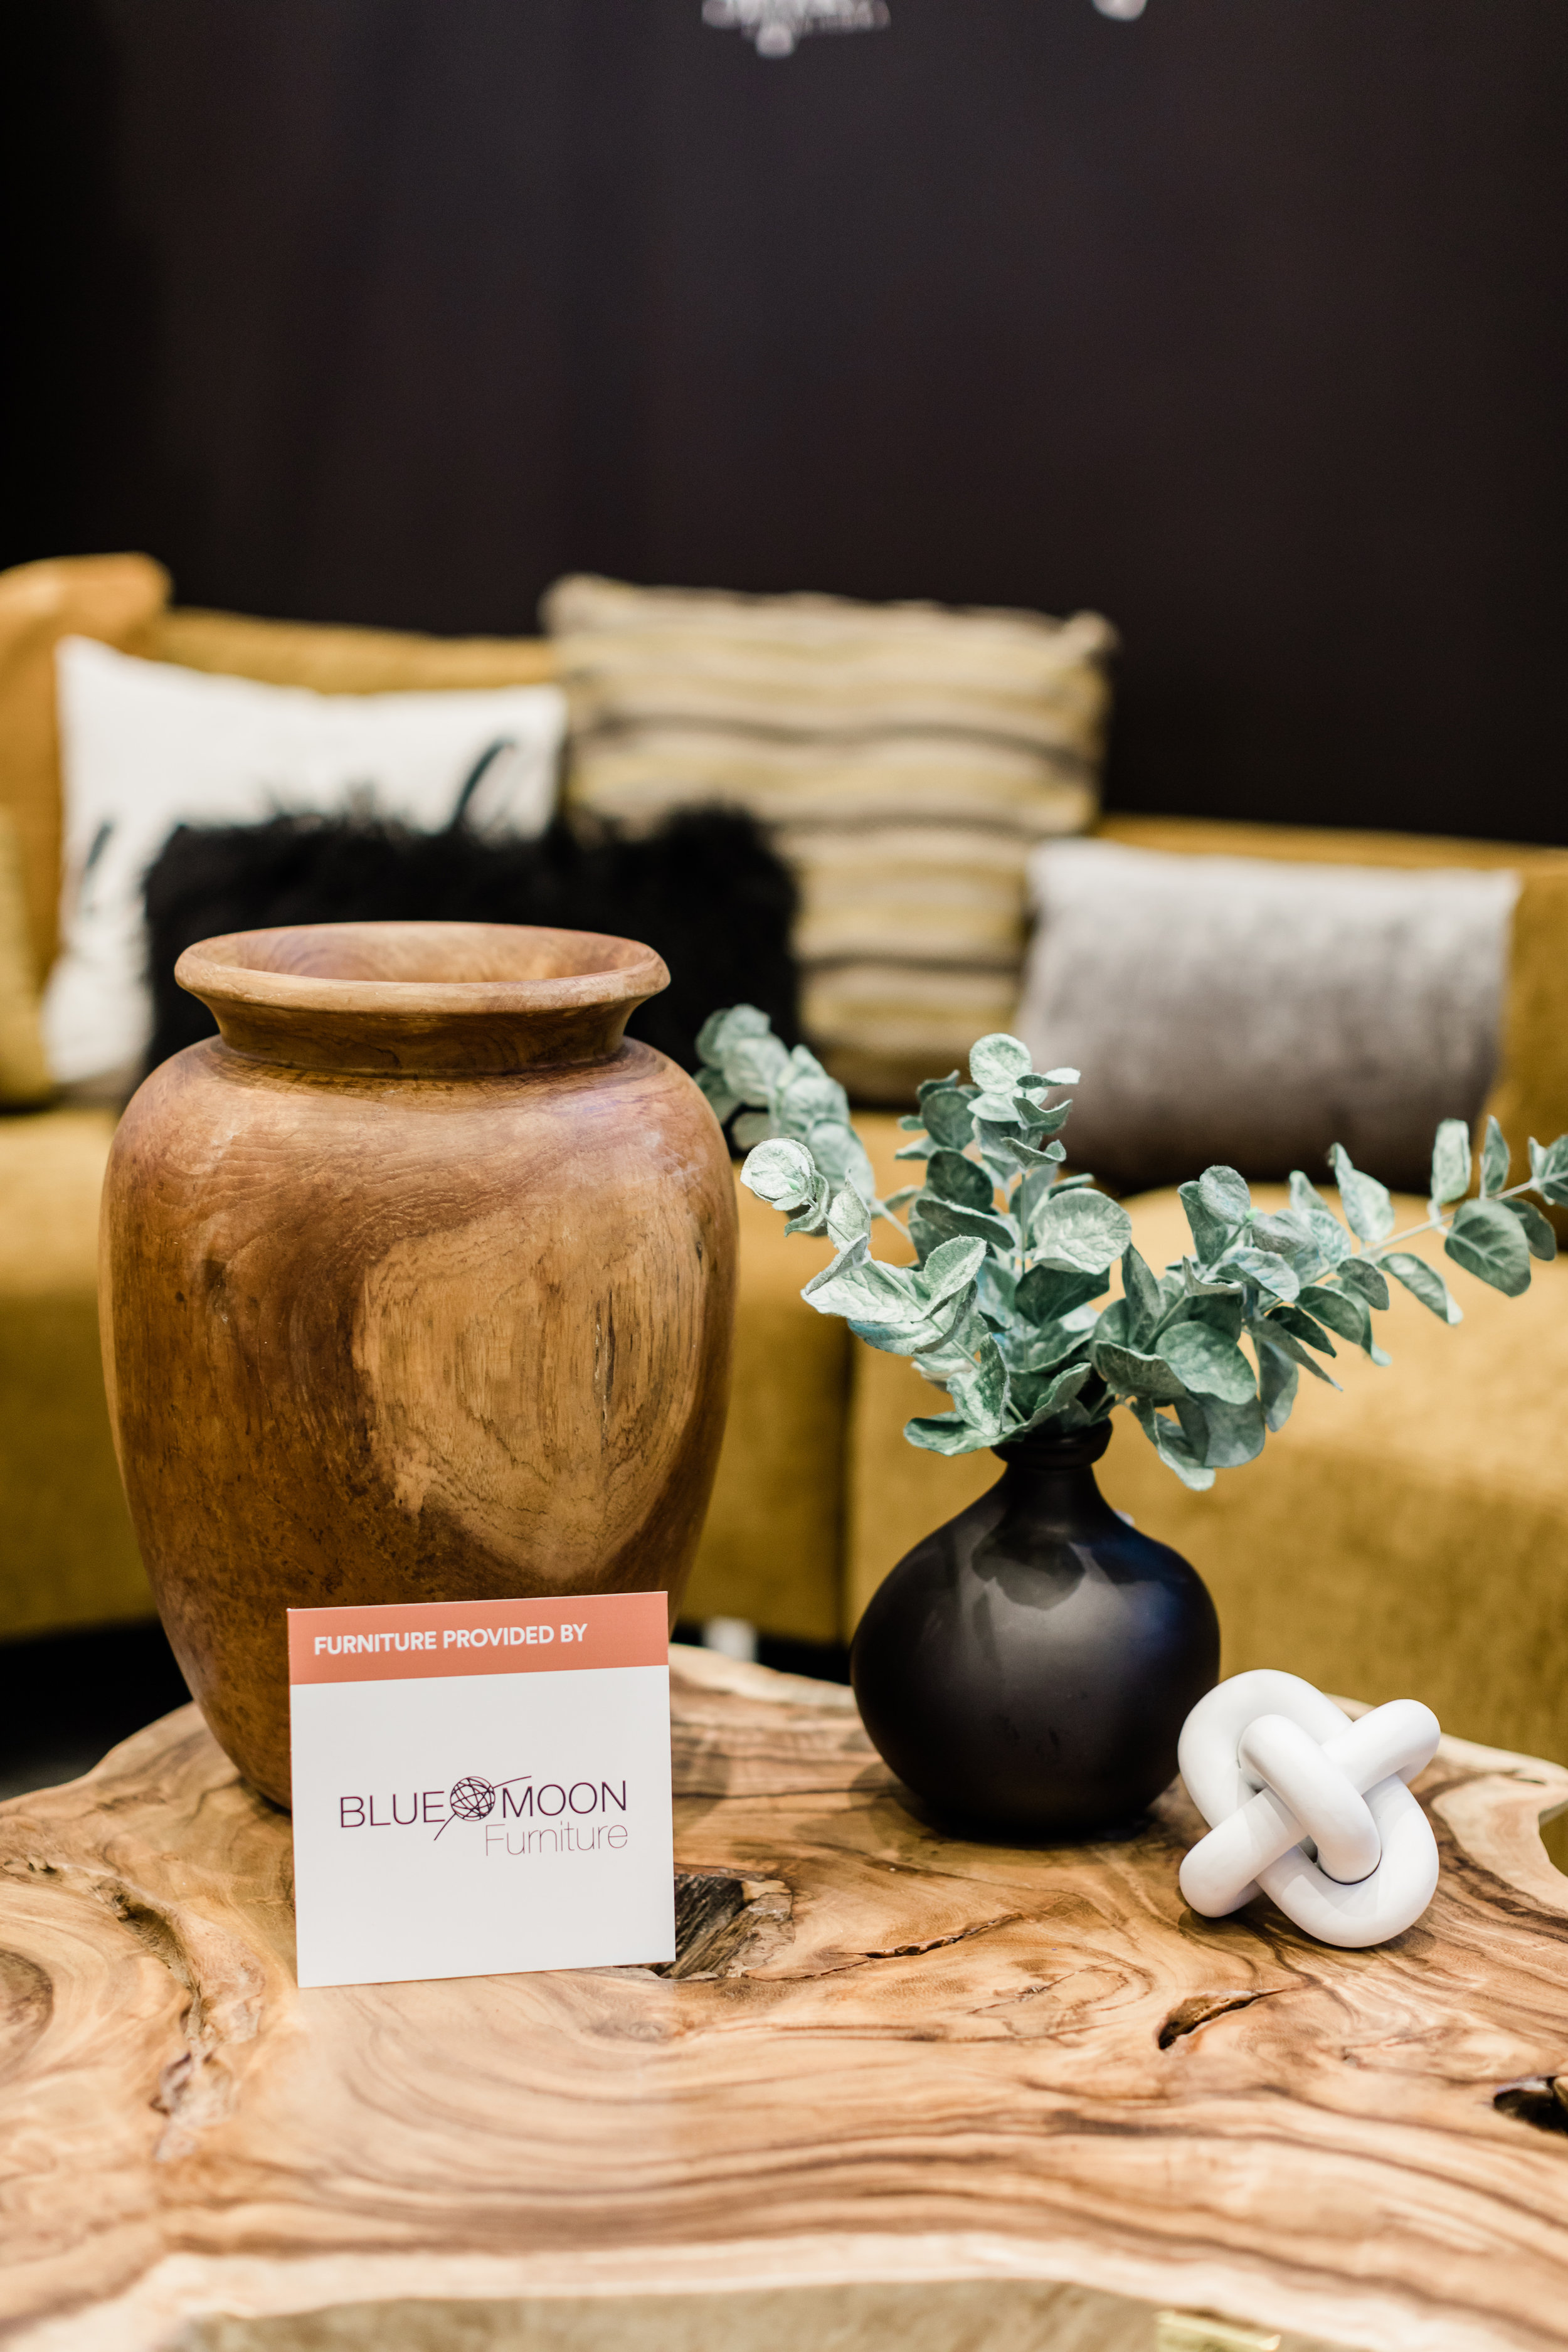 Blue Moon Furniture. Winnipeg renovation show. The design Studio. Teak Root Vase, Coffee table.